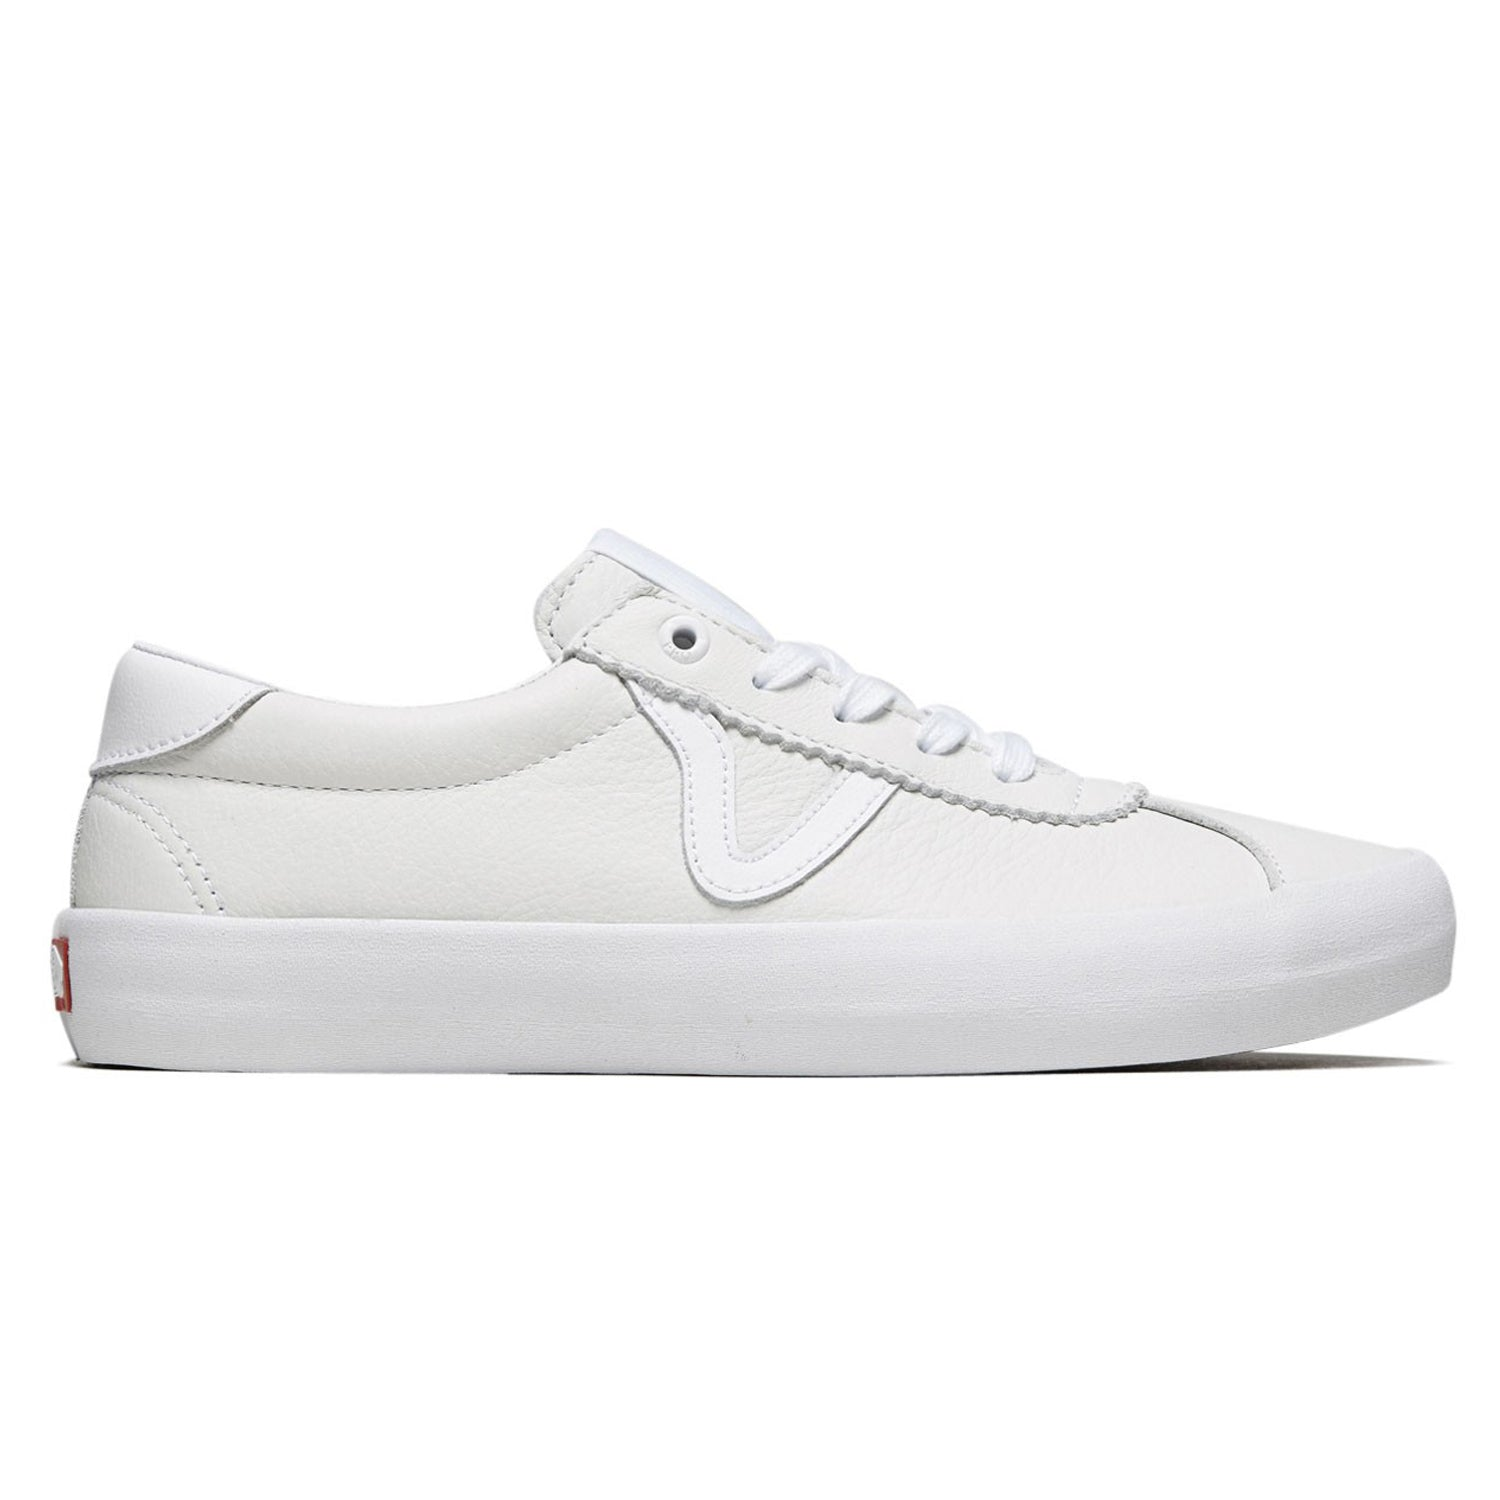 Vans Epoch Sport Pro White/White Leather